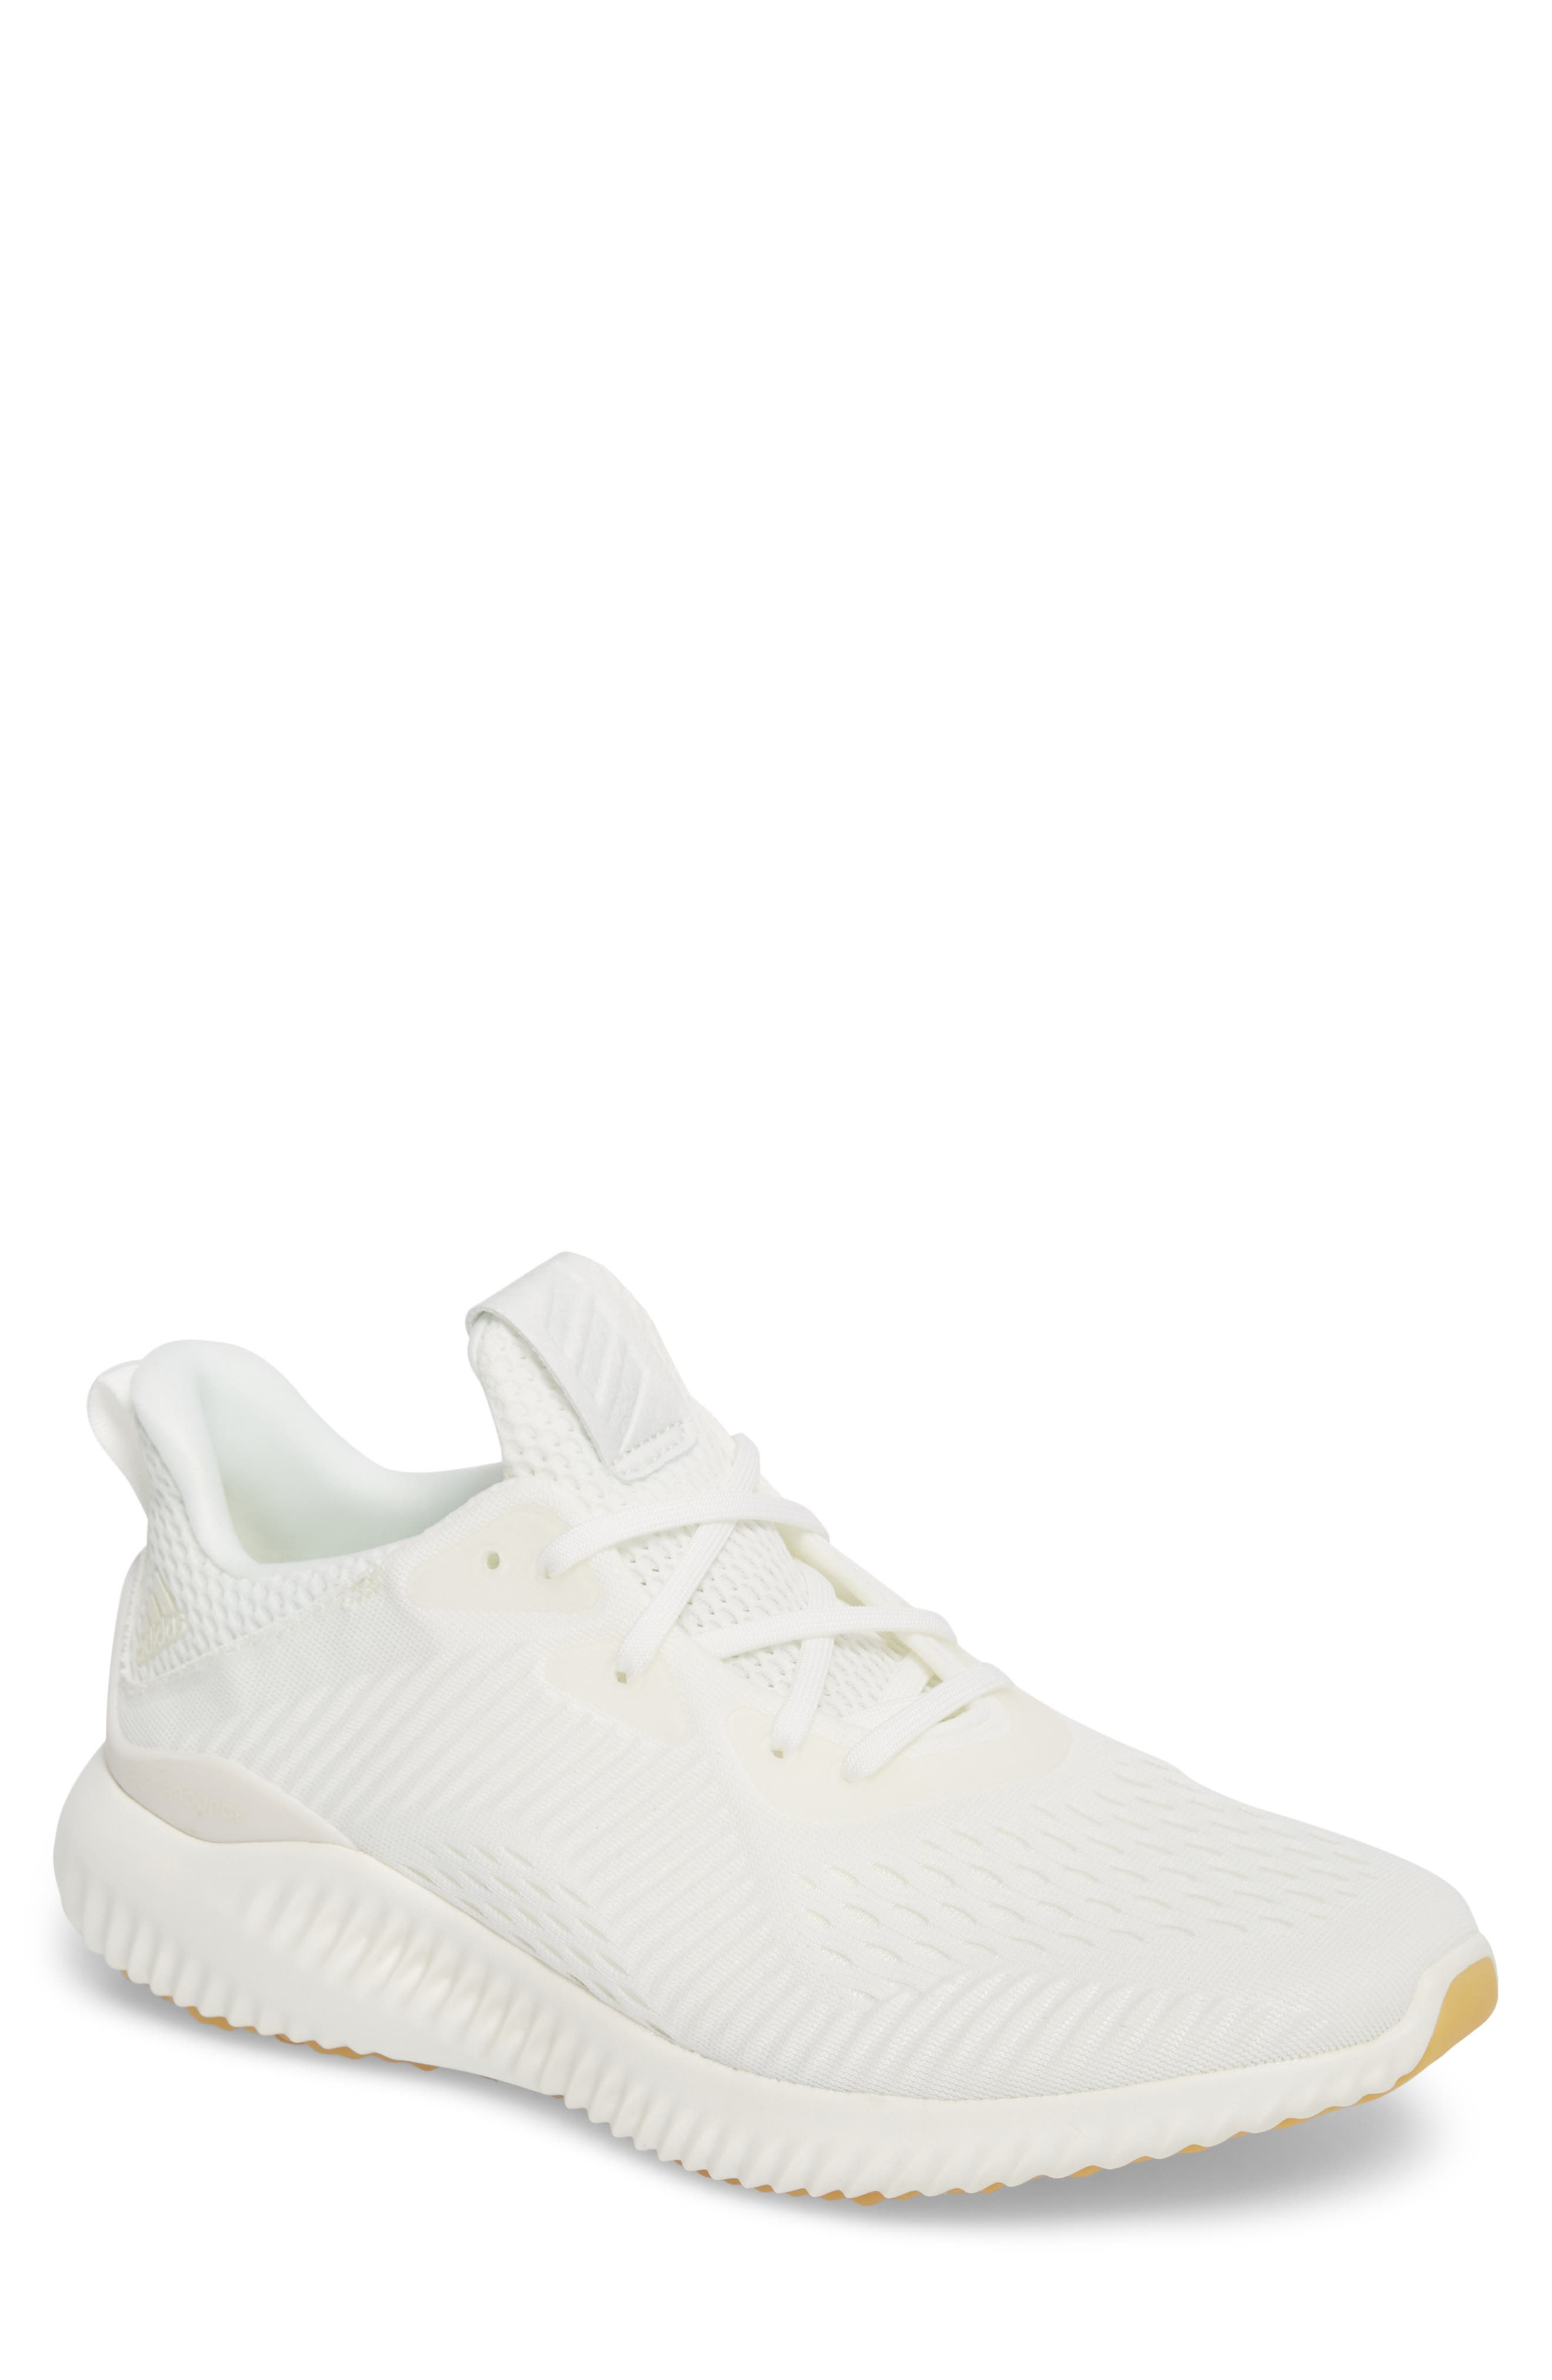 AlphaBounce EM Undye Running Shoe,                         Main,                         color, Non Dyed/ Grey